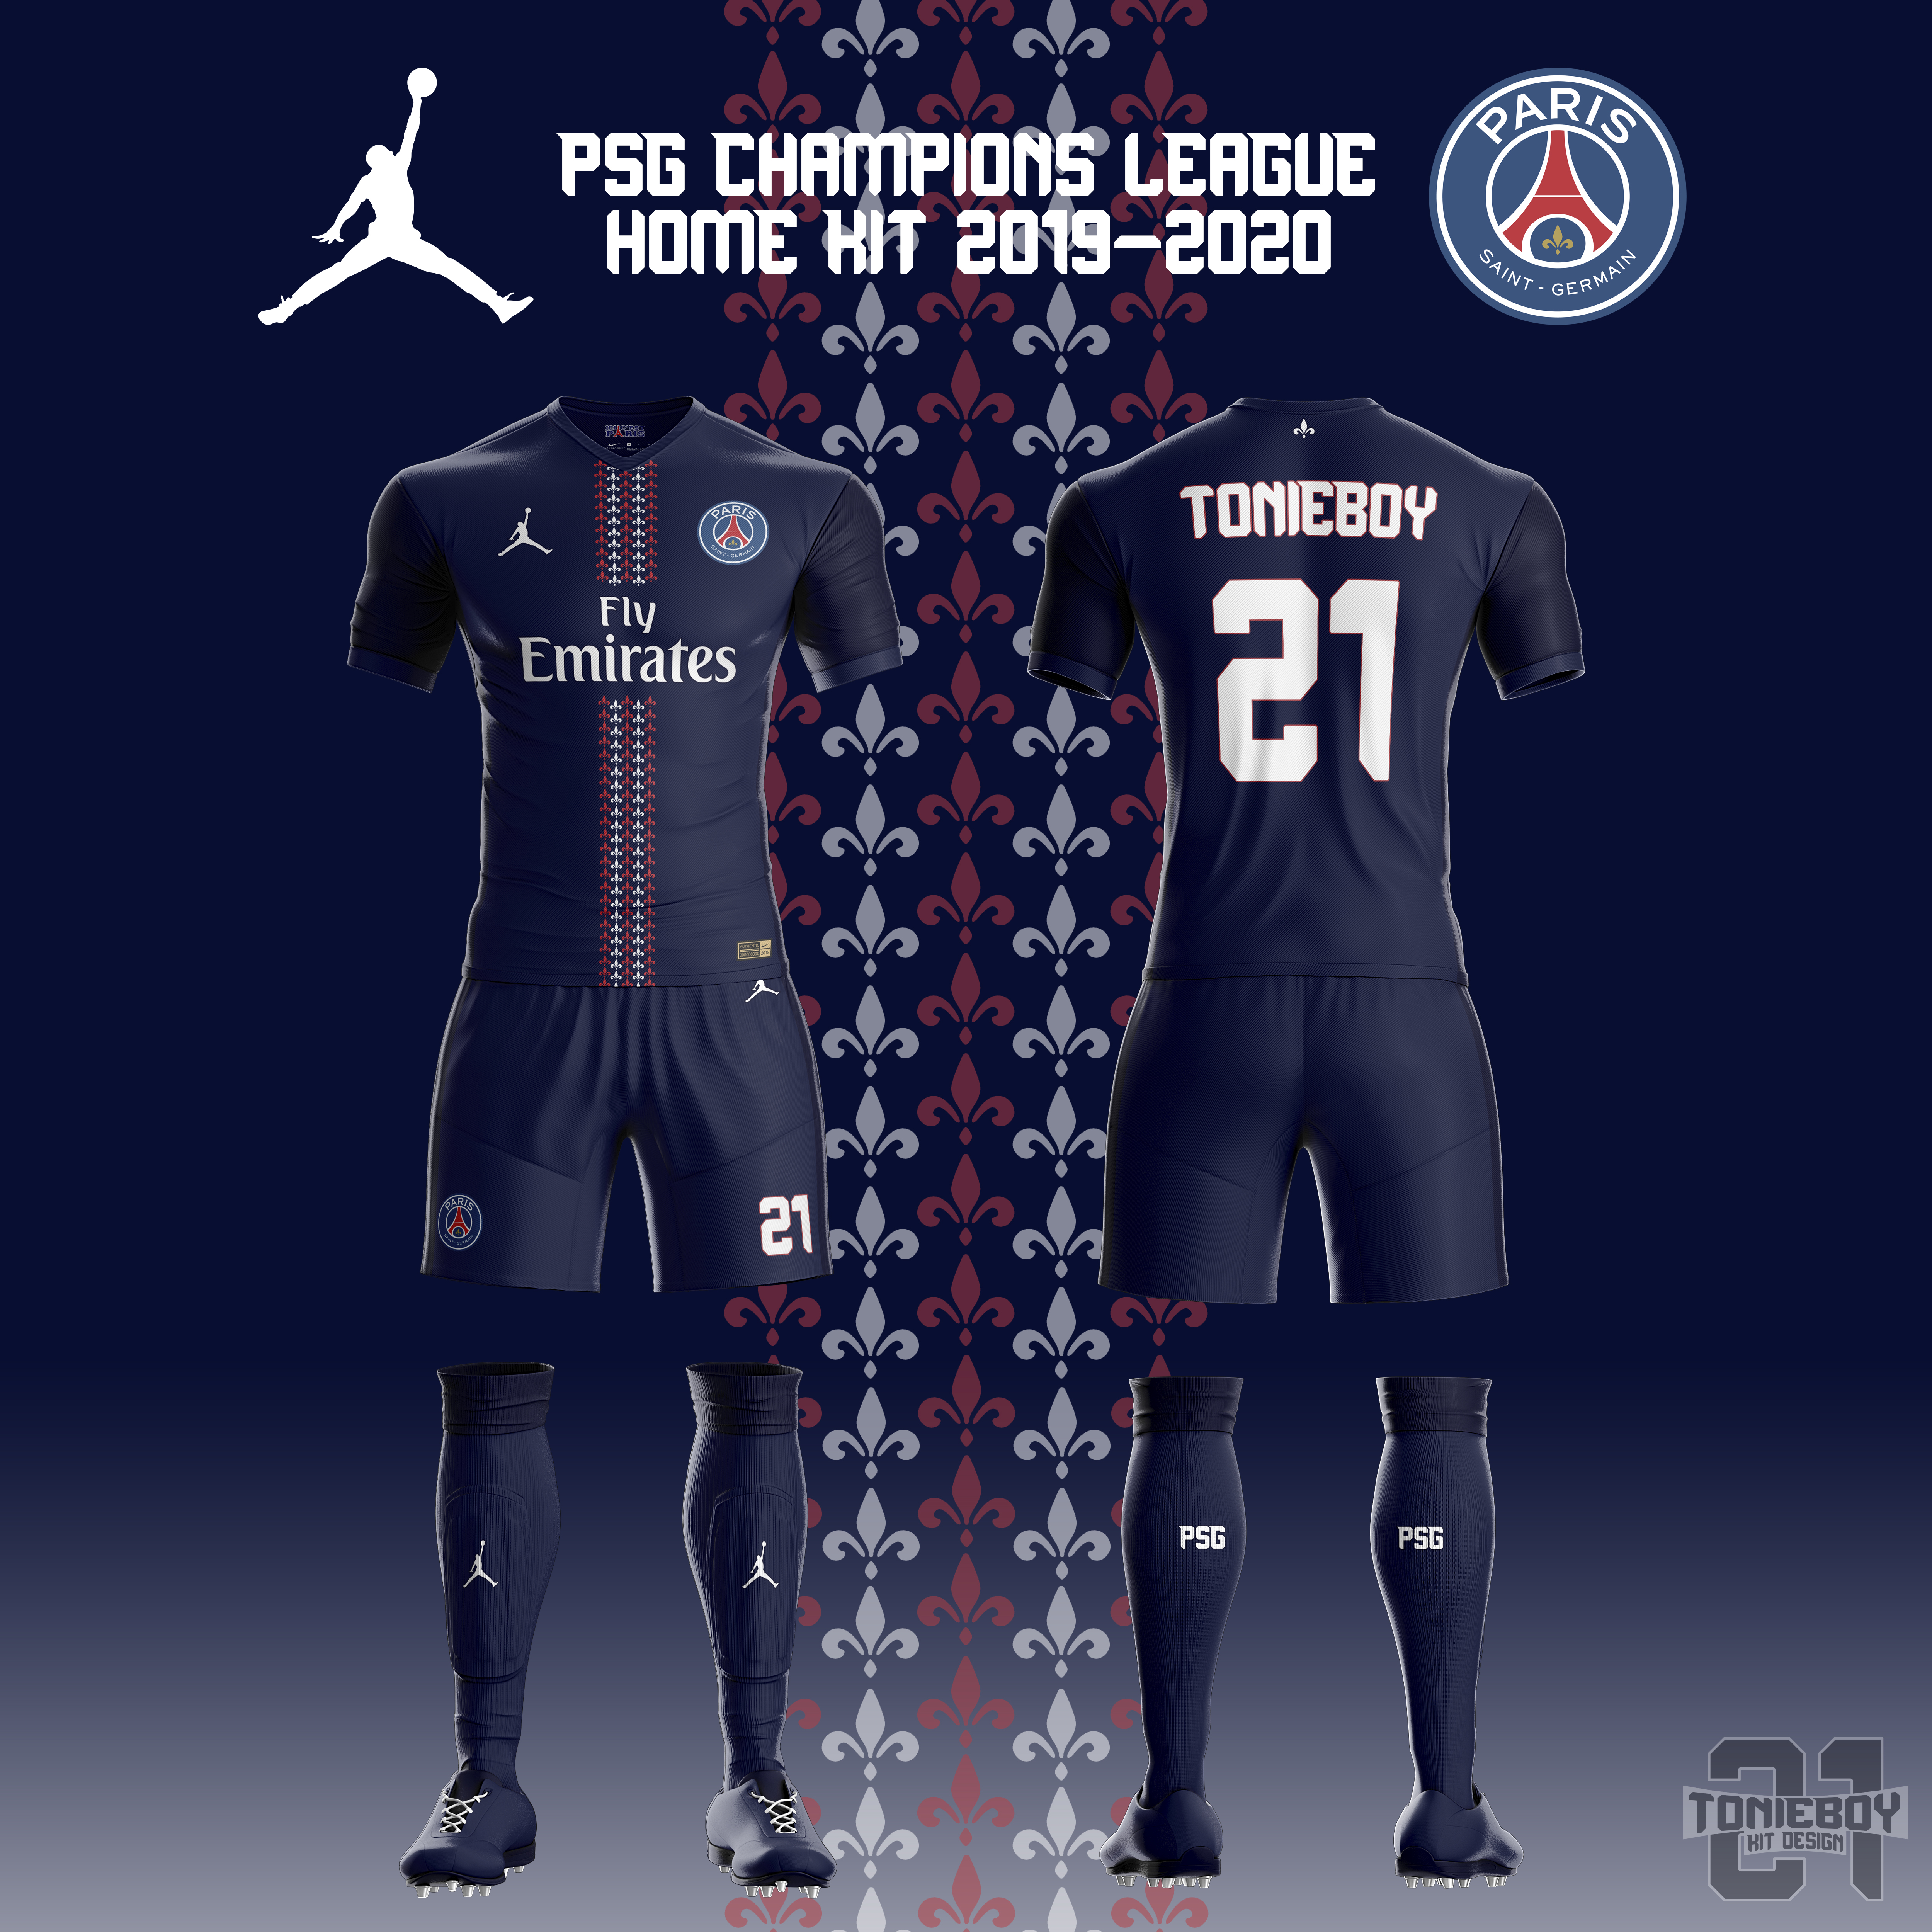 online store f66f8 cff36 PSG Champions League Kit